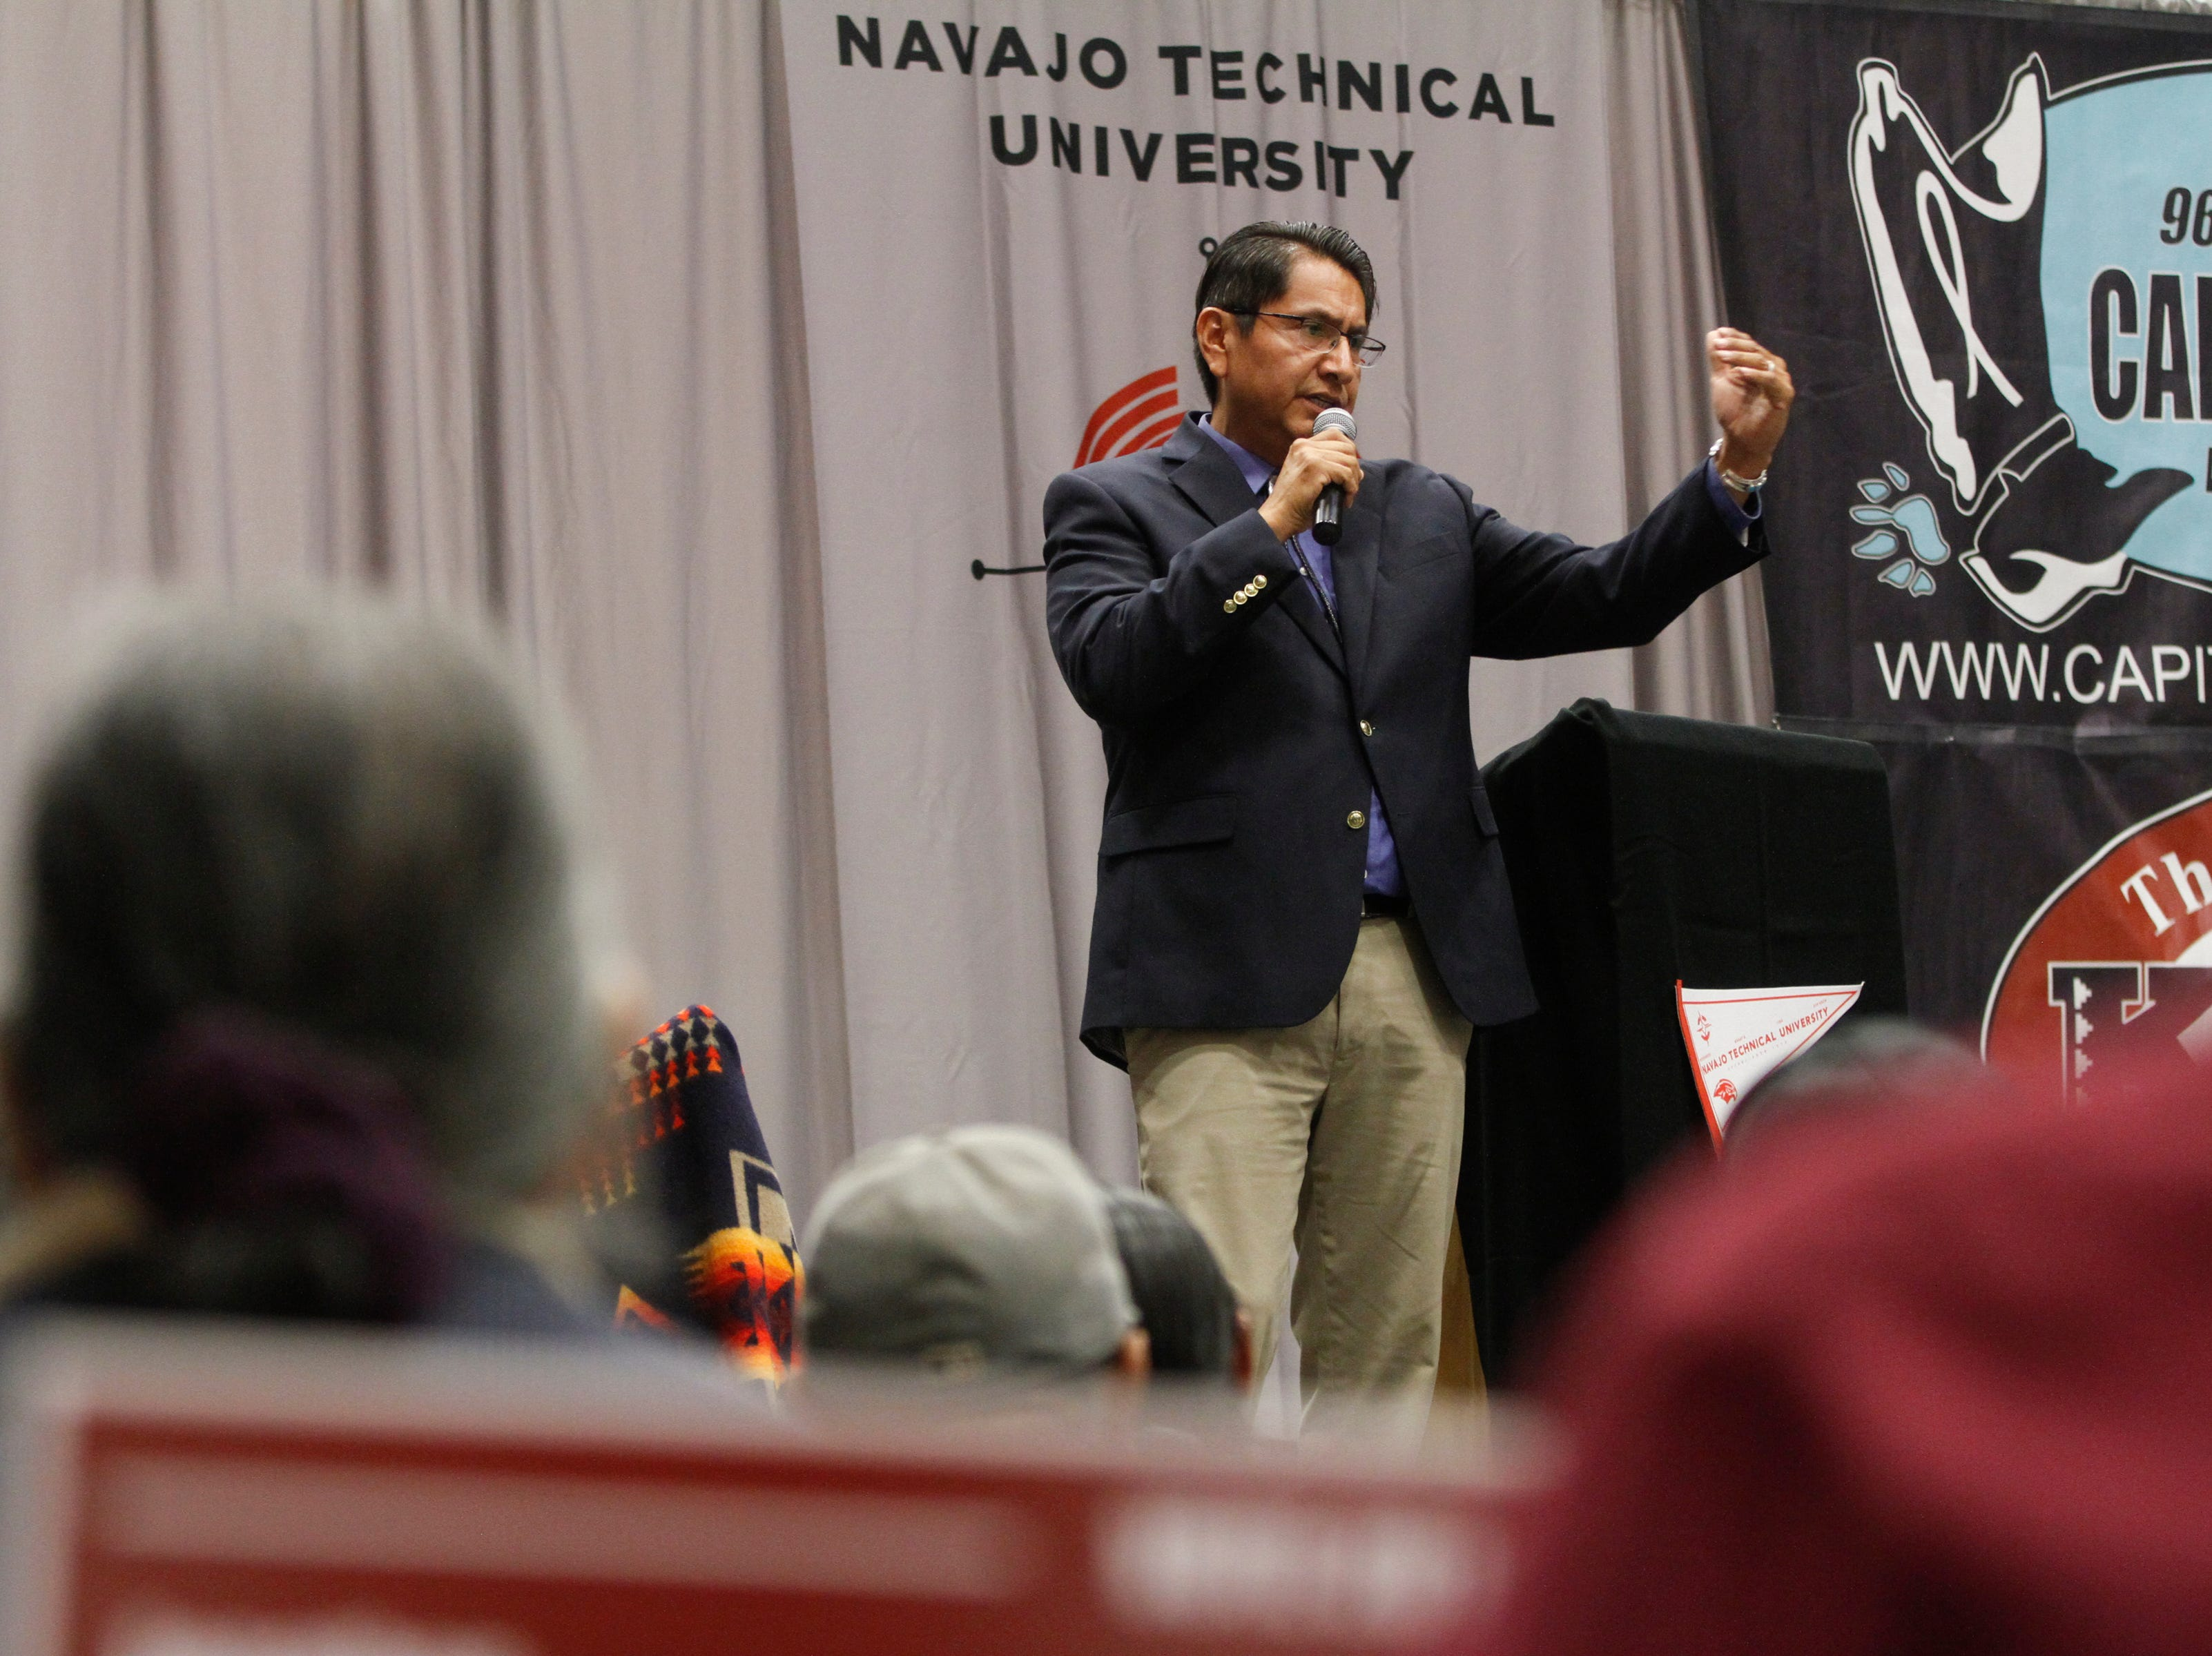 Navajo Nation Presidential Candidate, Vice President Jonathan Nez answers a question during a Navajo Nation Presidential debate, Tuesday, Oct. 16, 2018 at Navajo Technical University's  Wellness Center in Crownpoint.